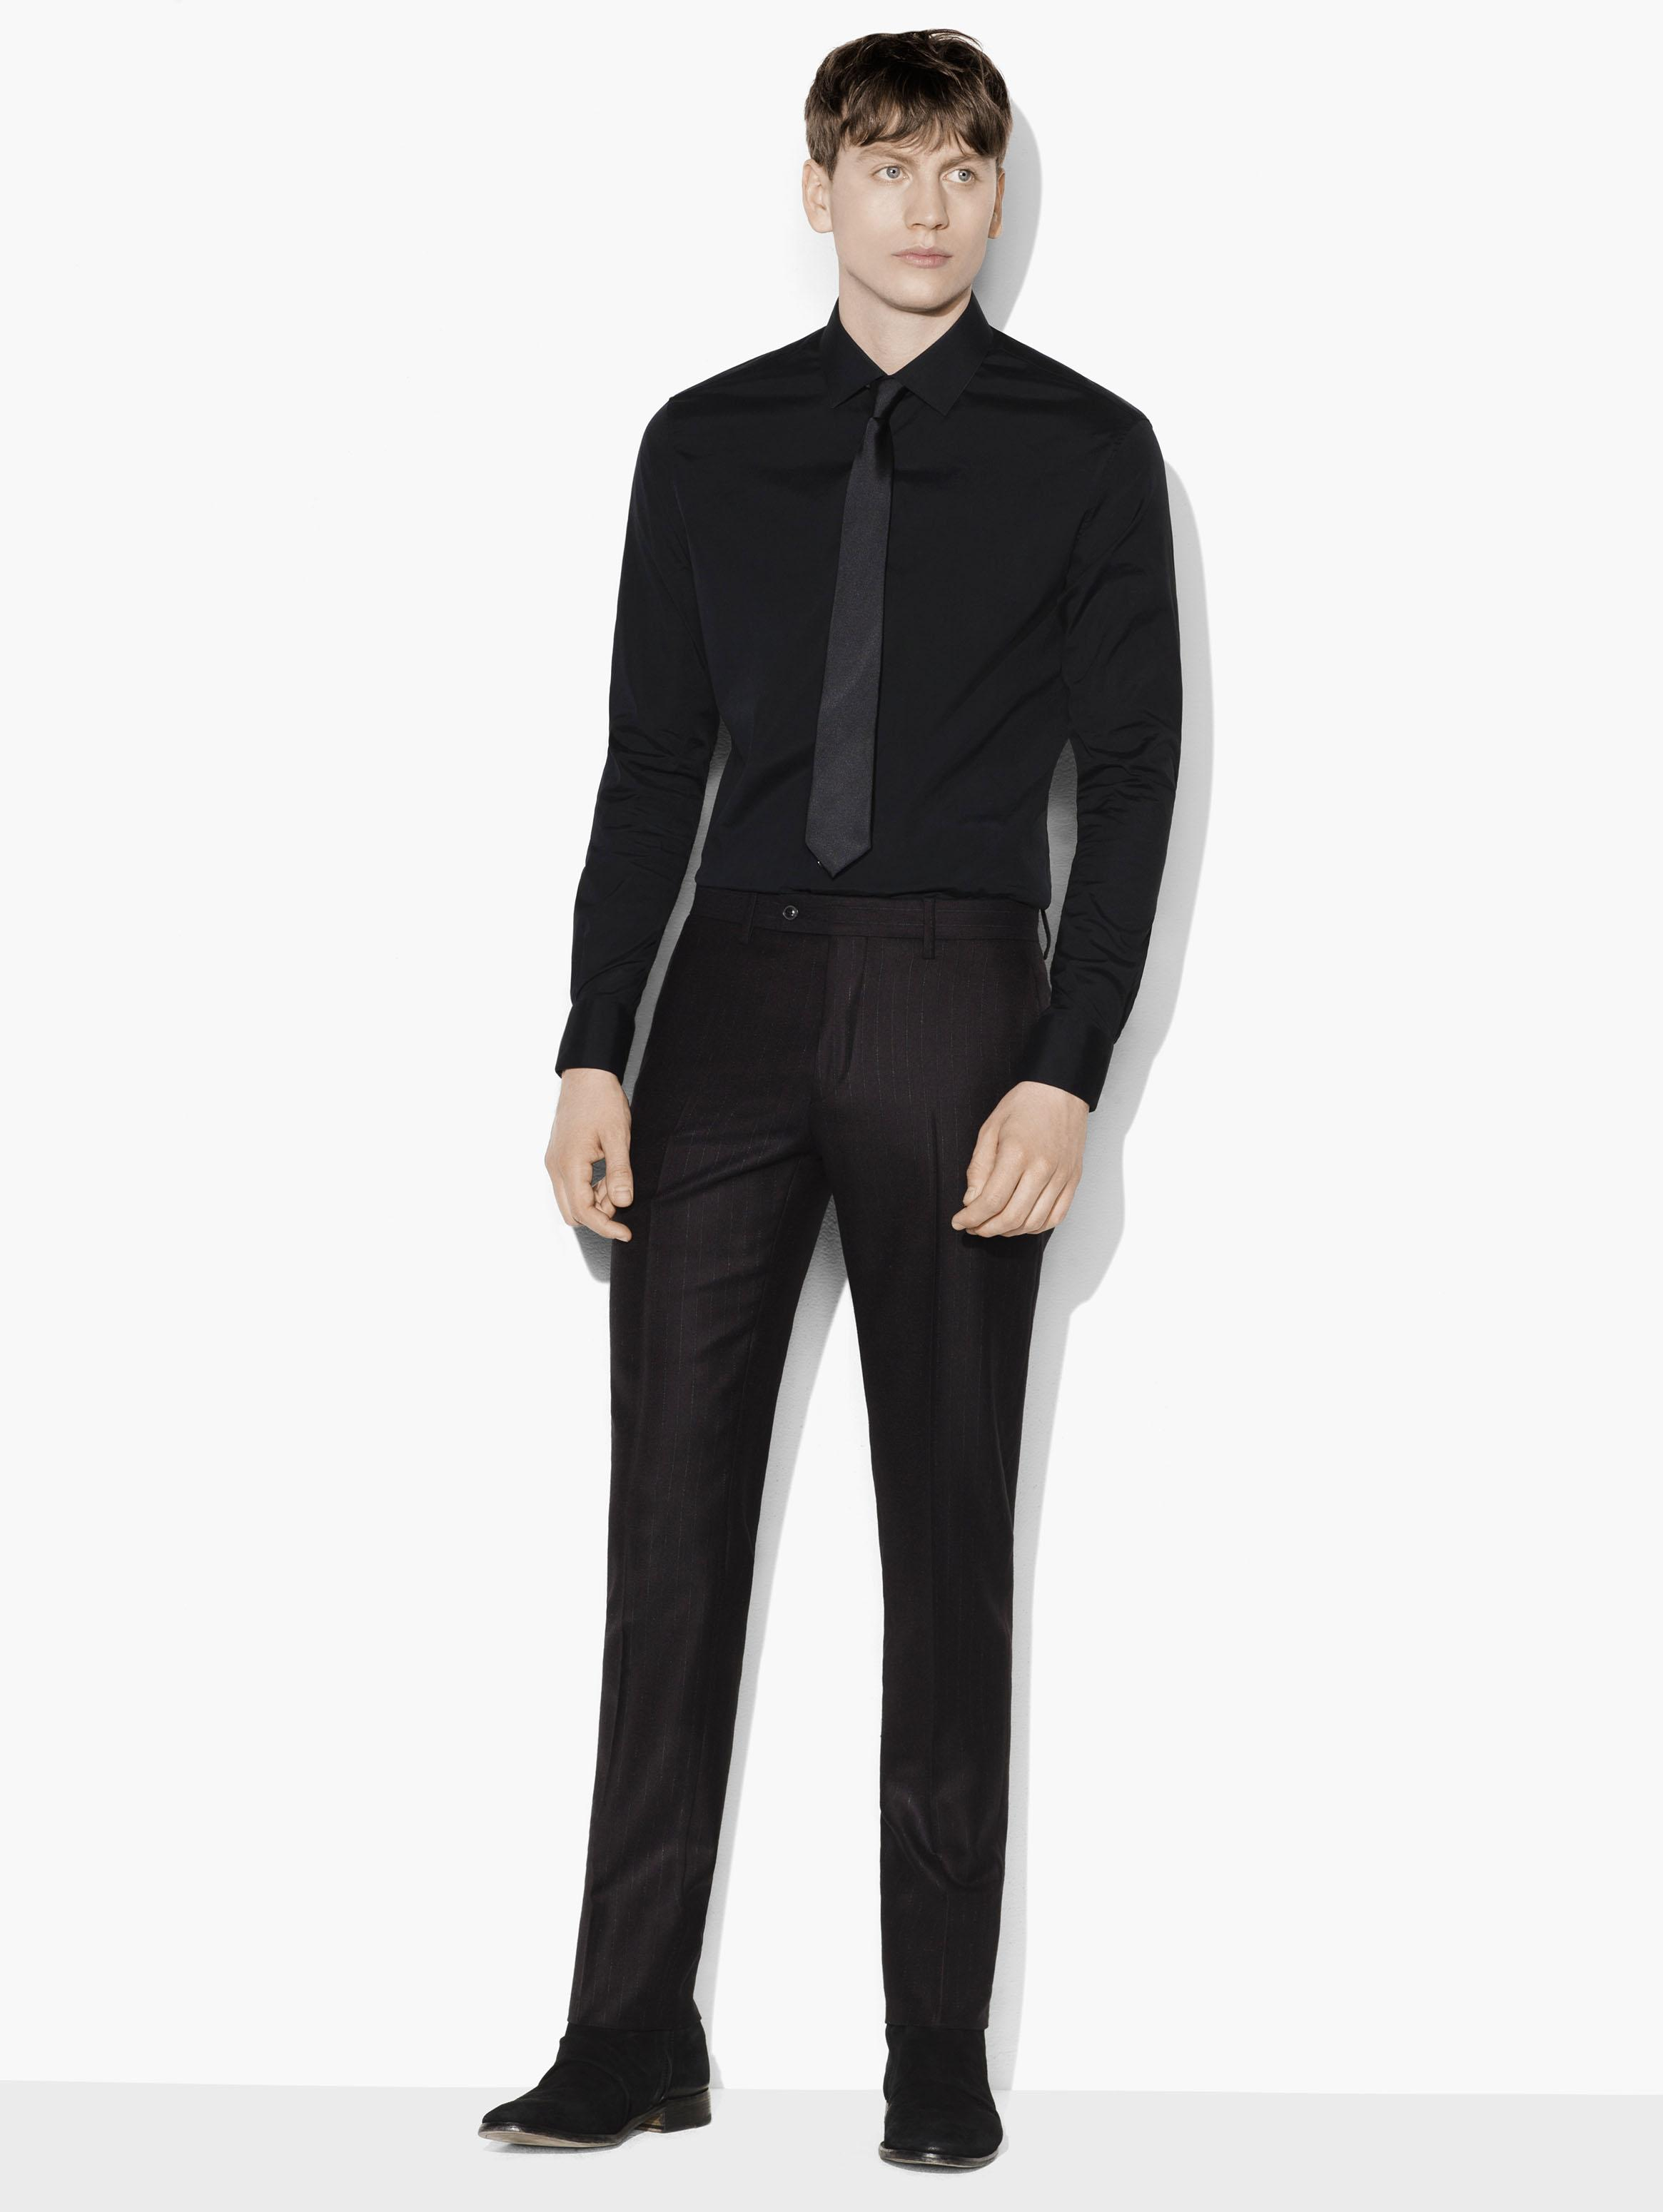 Austin Charcoal Pinstripe Dress Pant